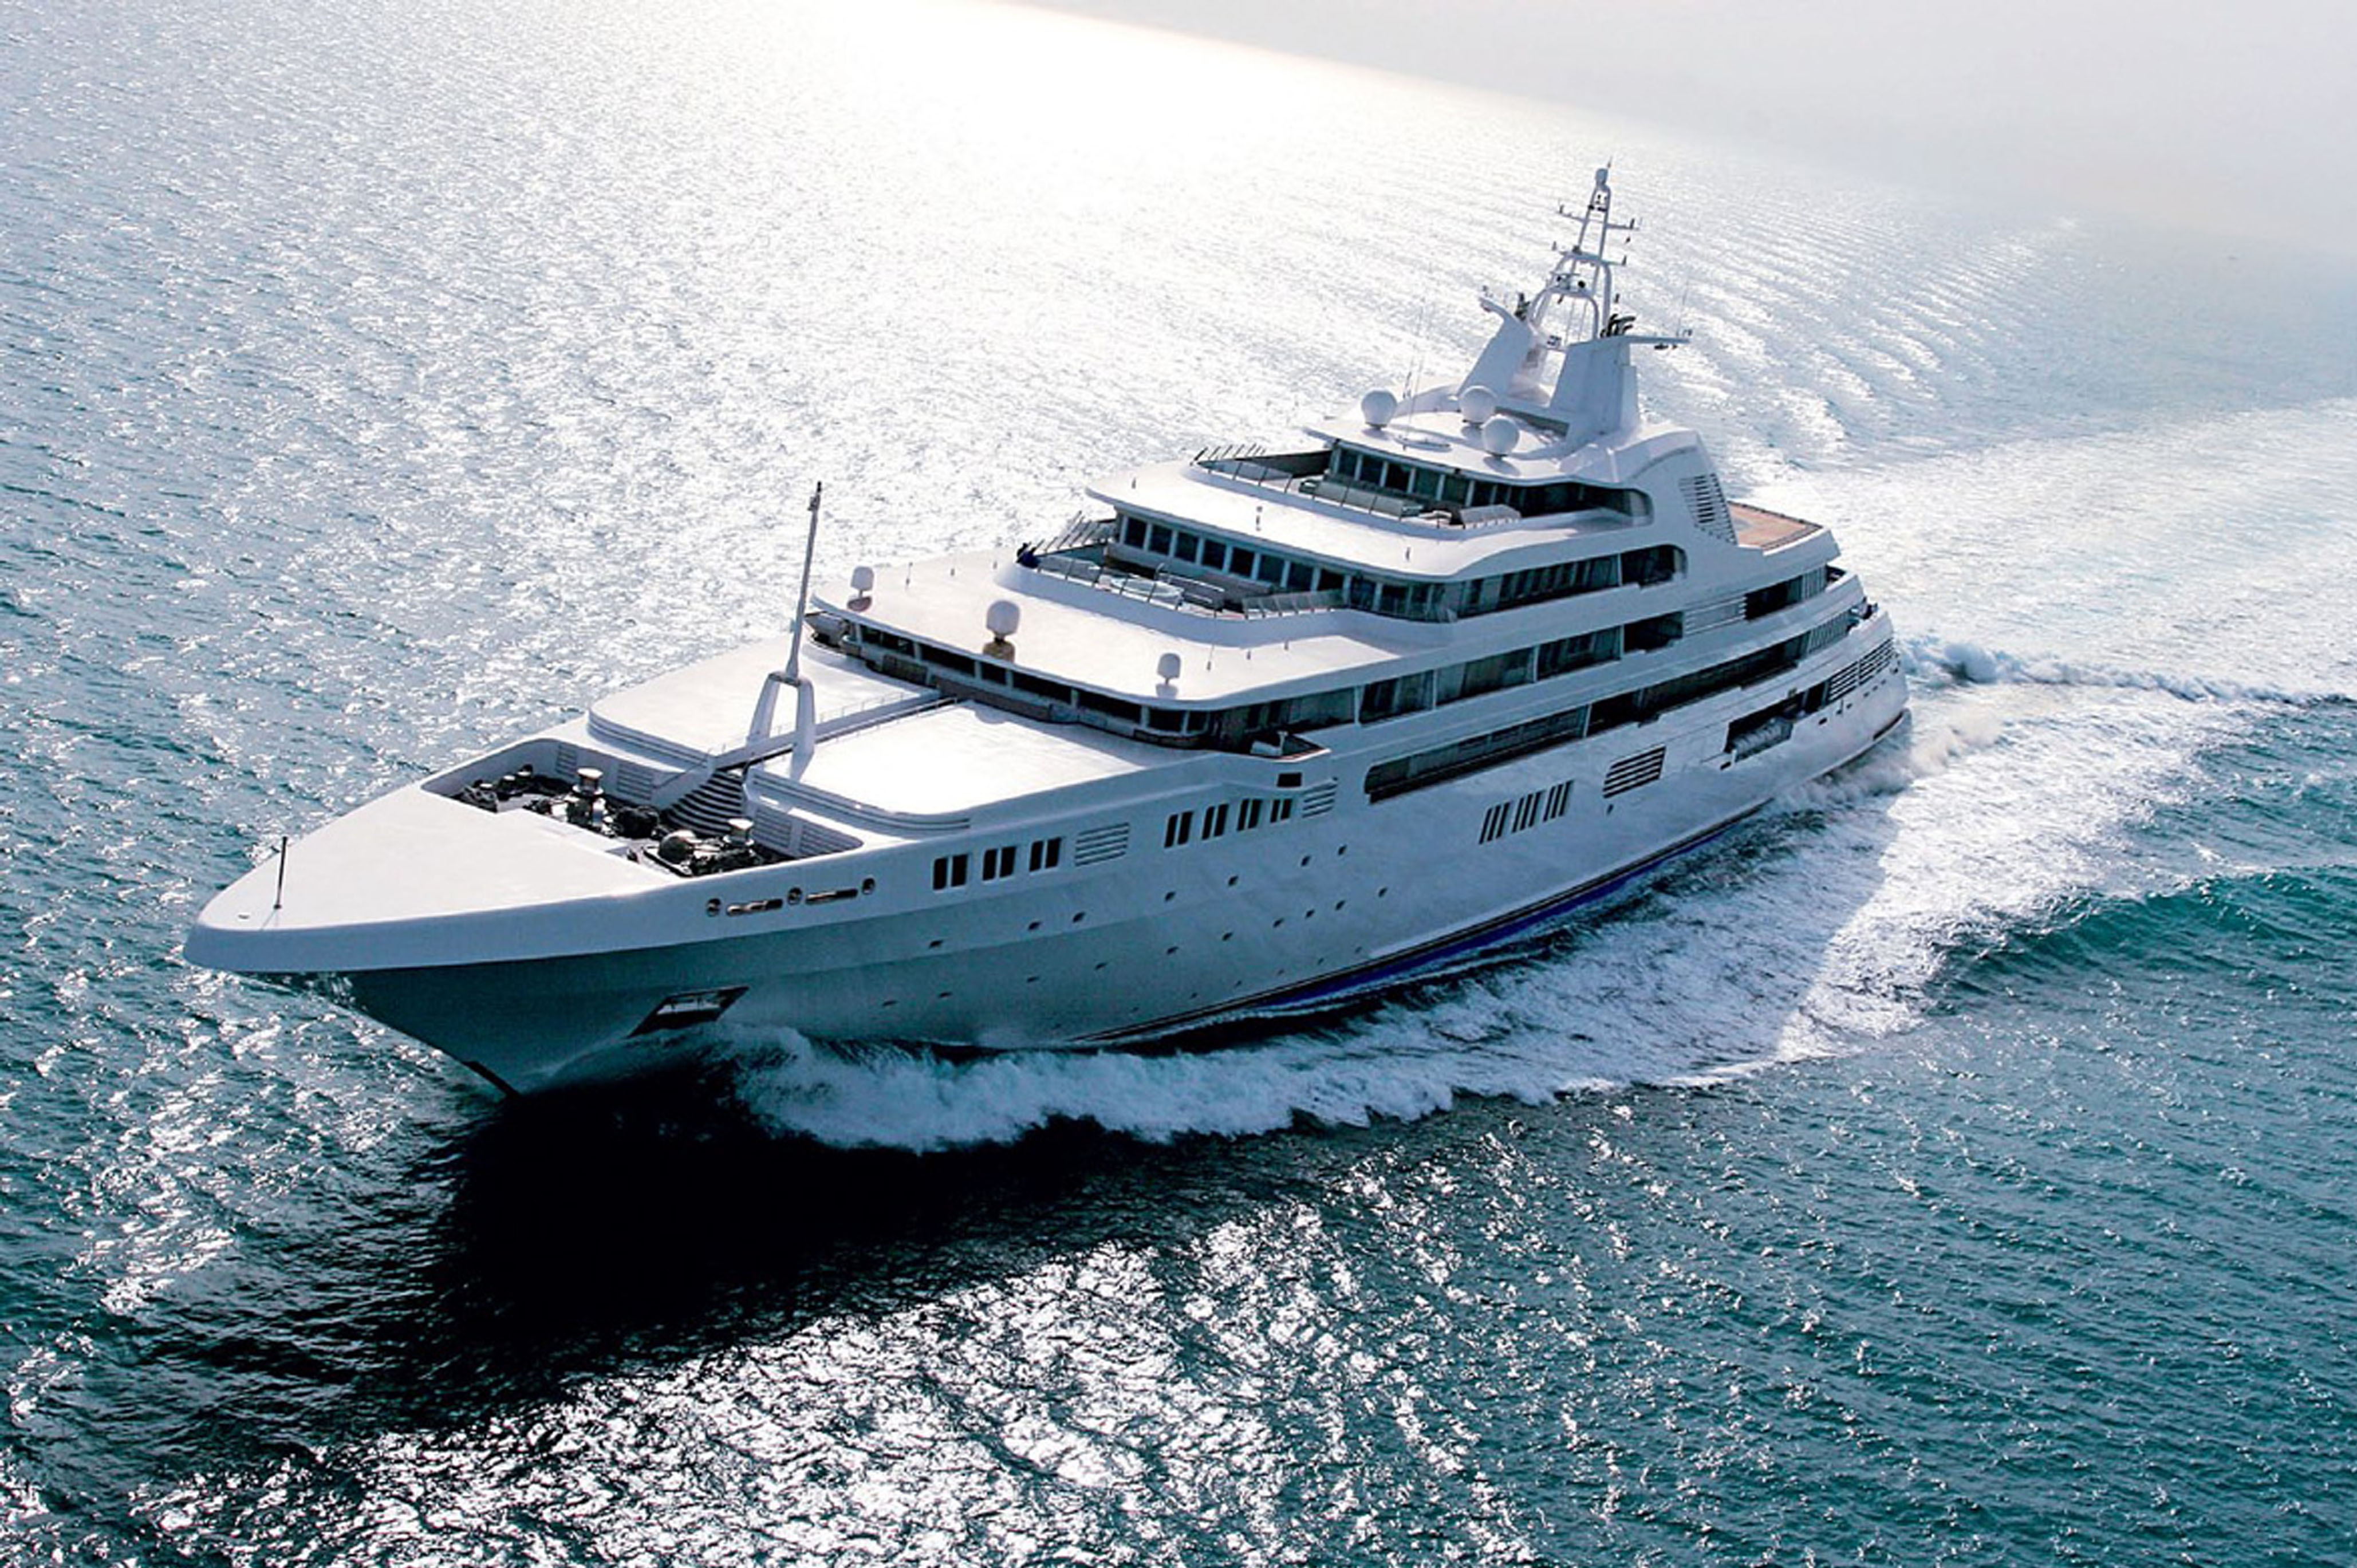 most expensive luxury yachts The 5 Most Expensive Luxury Yachts in The World the 5 most expensive luxury yachts in the world dubai 1